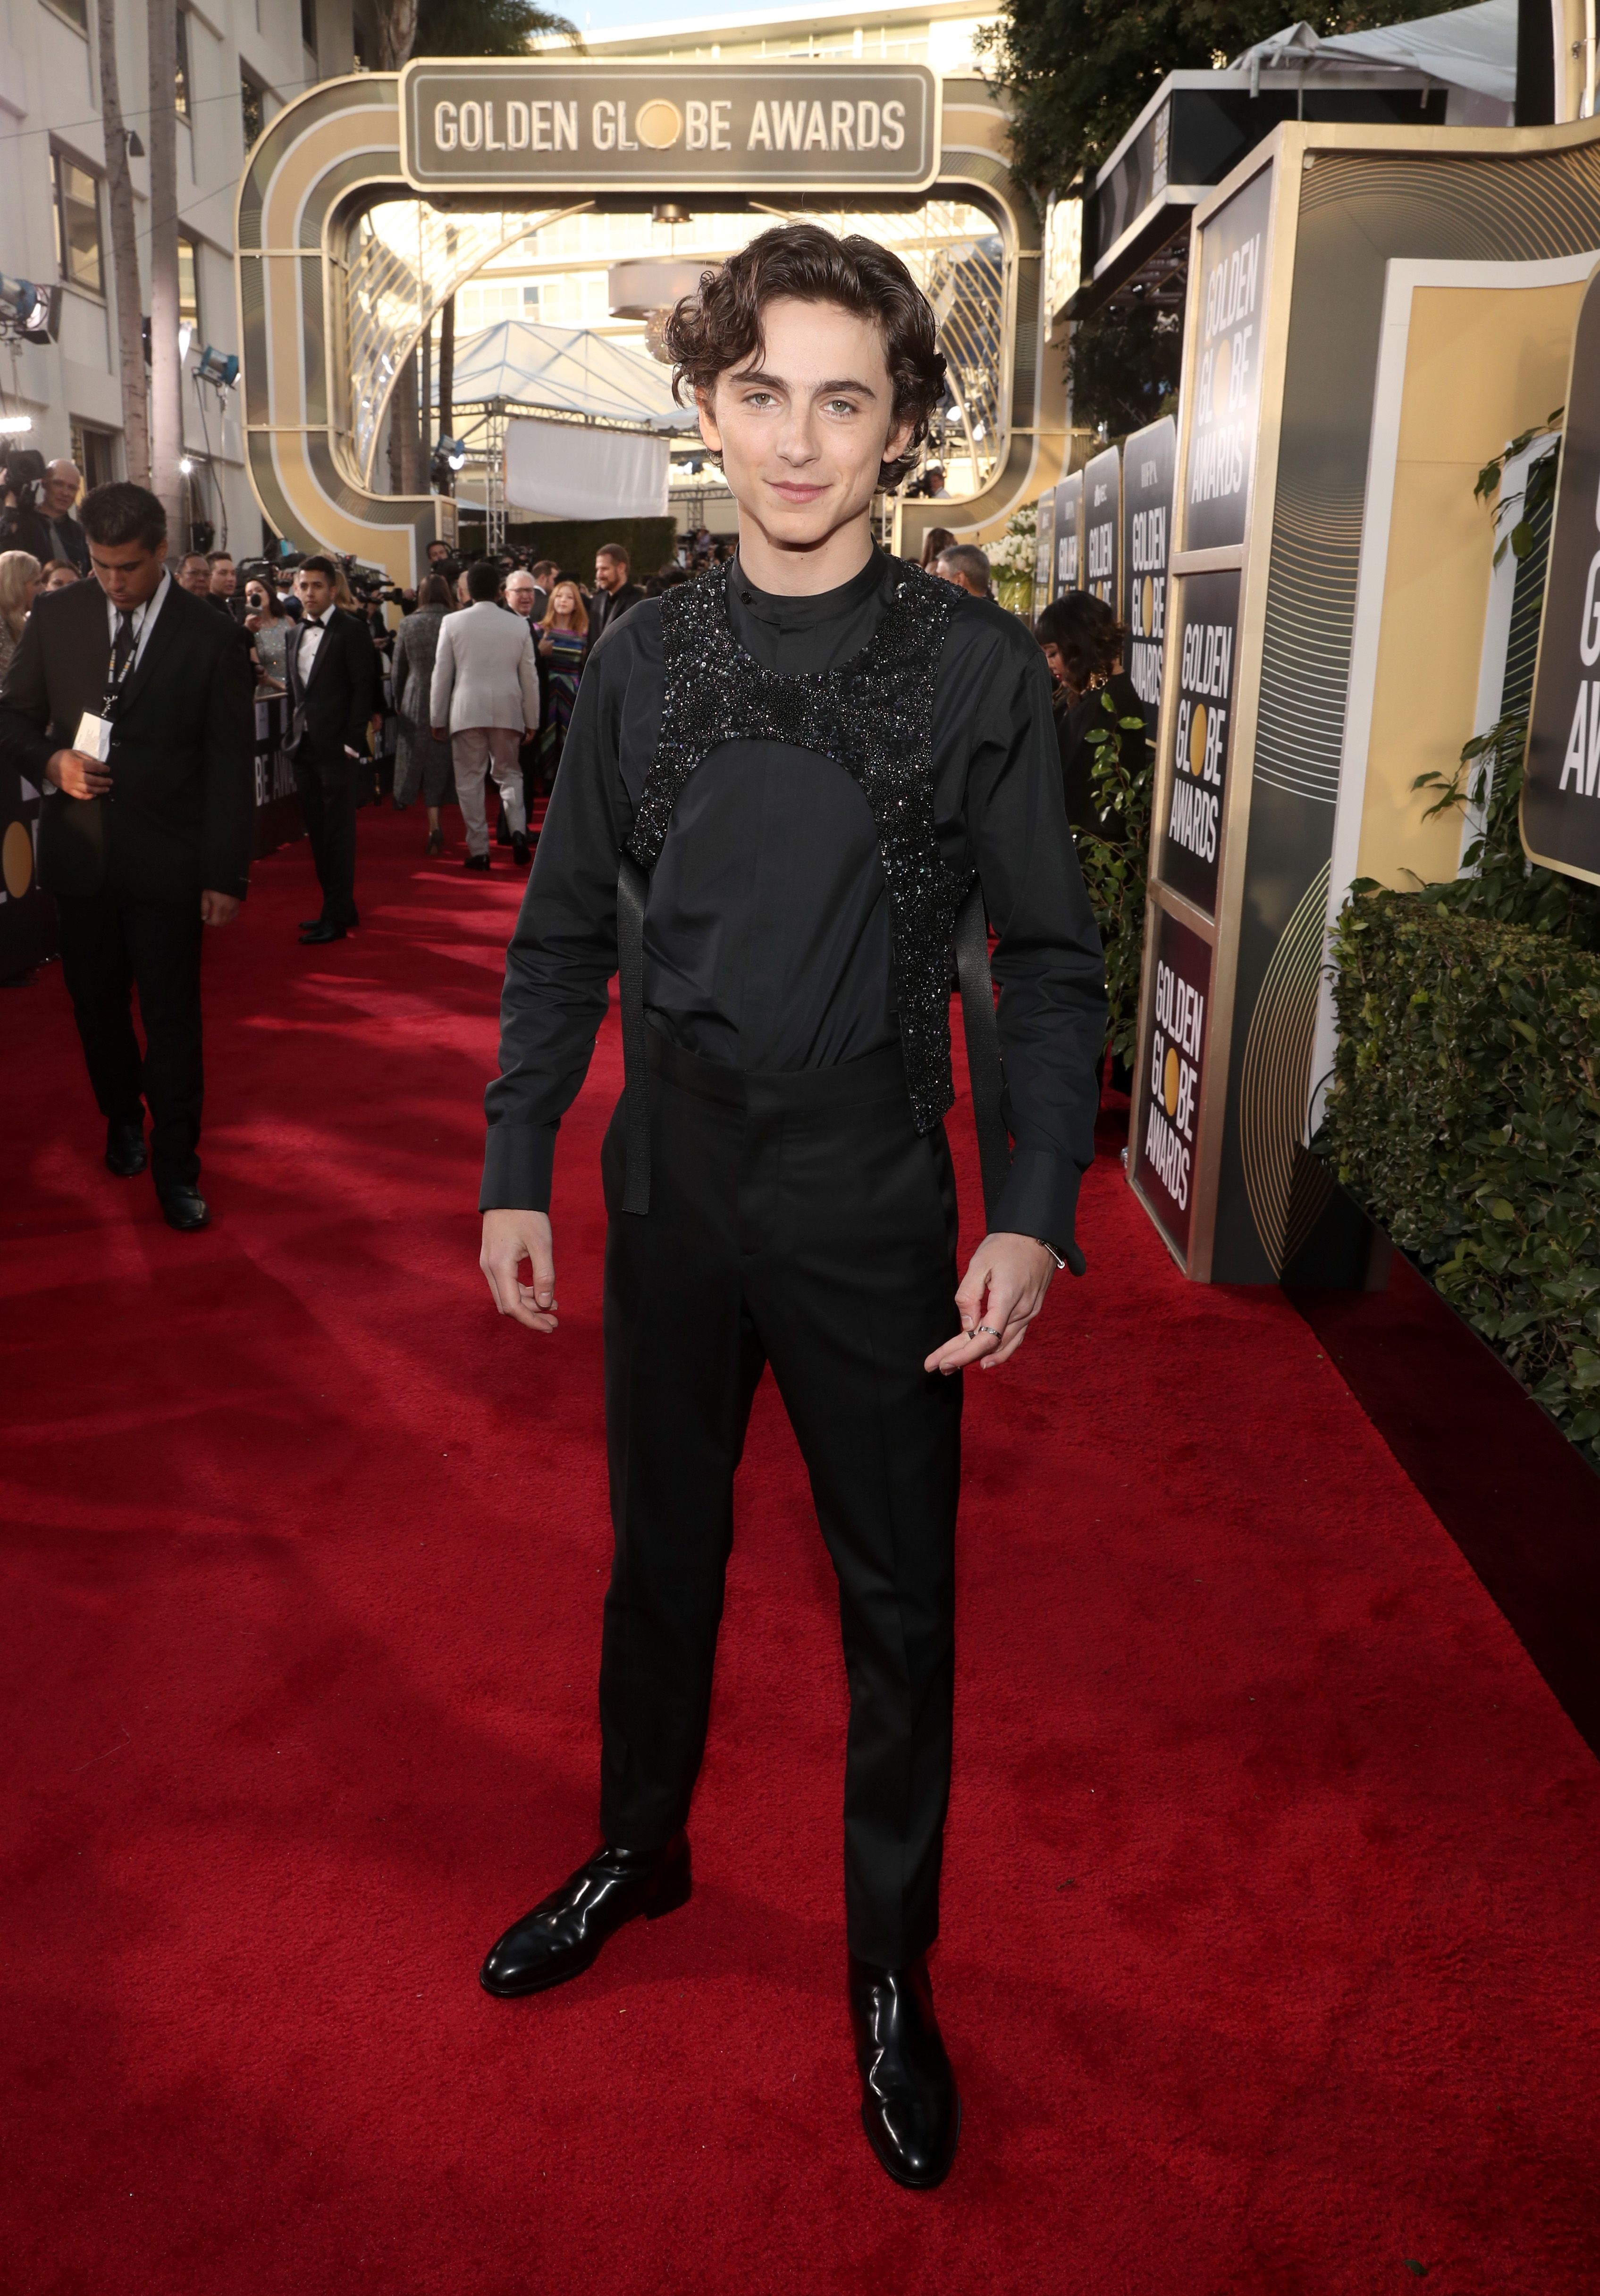 89605dd1e1ba Let s Speculate About Timothée Chalamet s Golden Globes Outfit